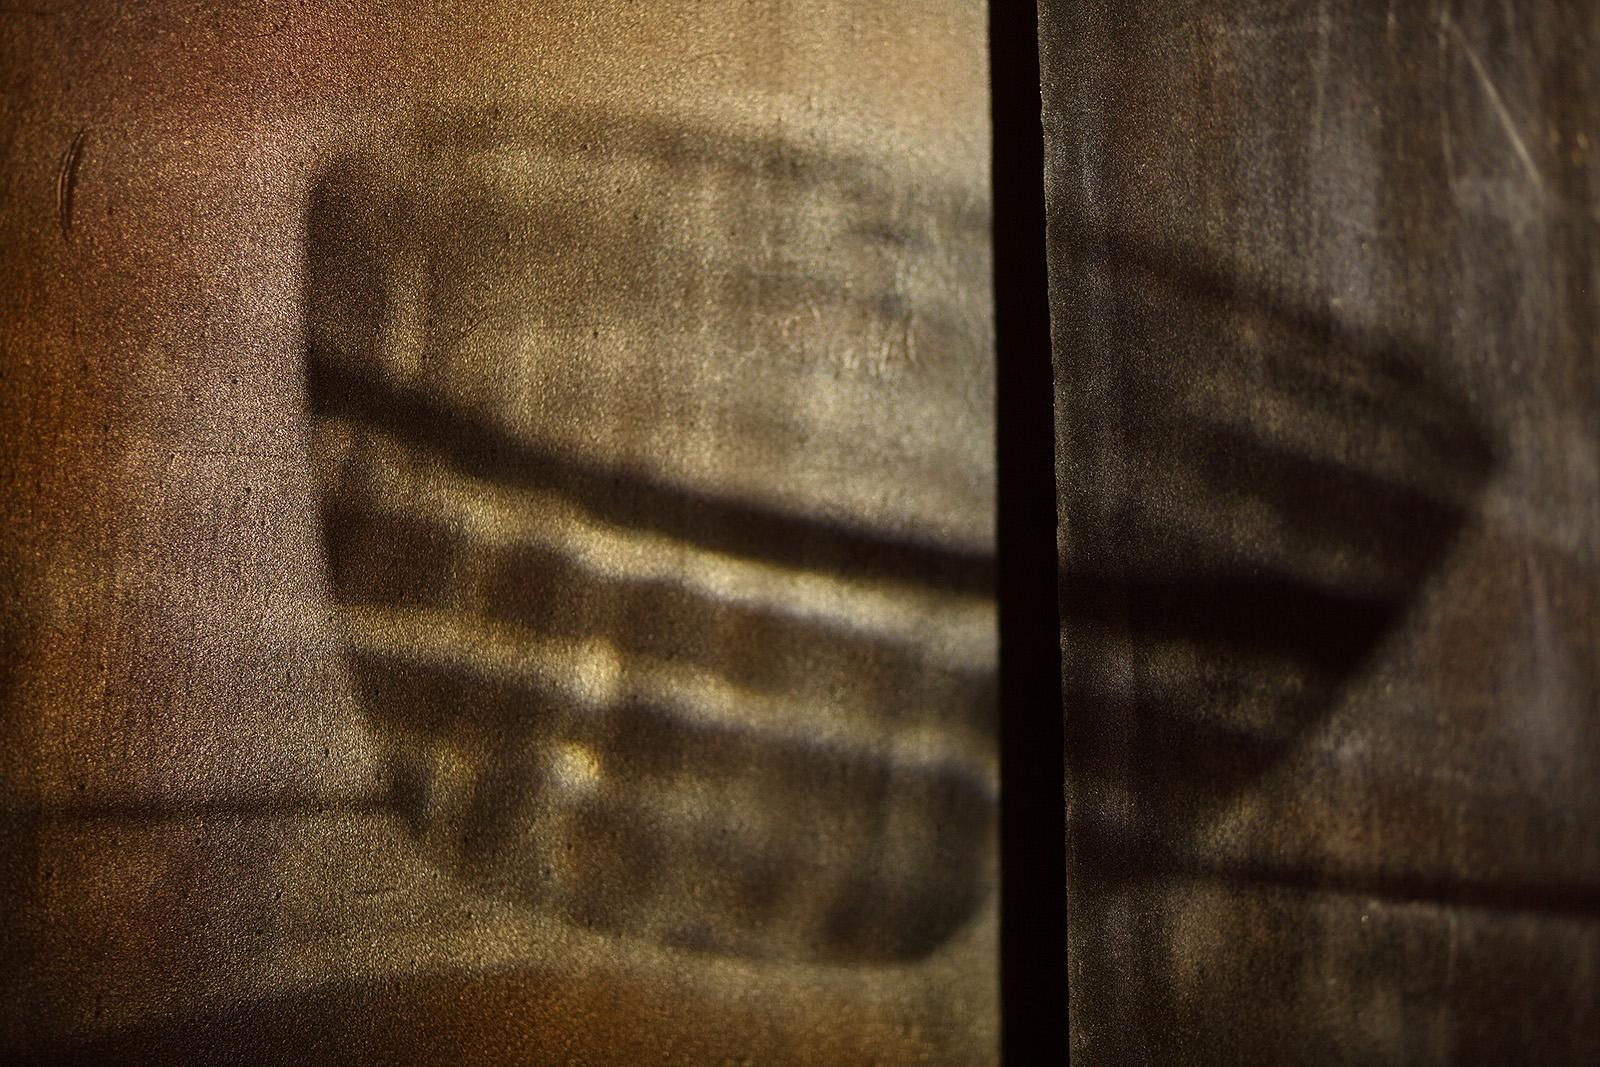 Interrupted Lunch, Vitalii Ledokollov, Contemporary Abstract Photography, Brown